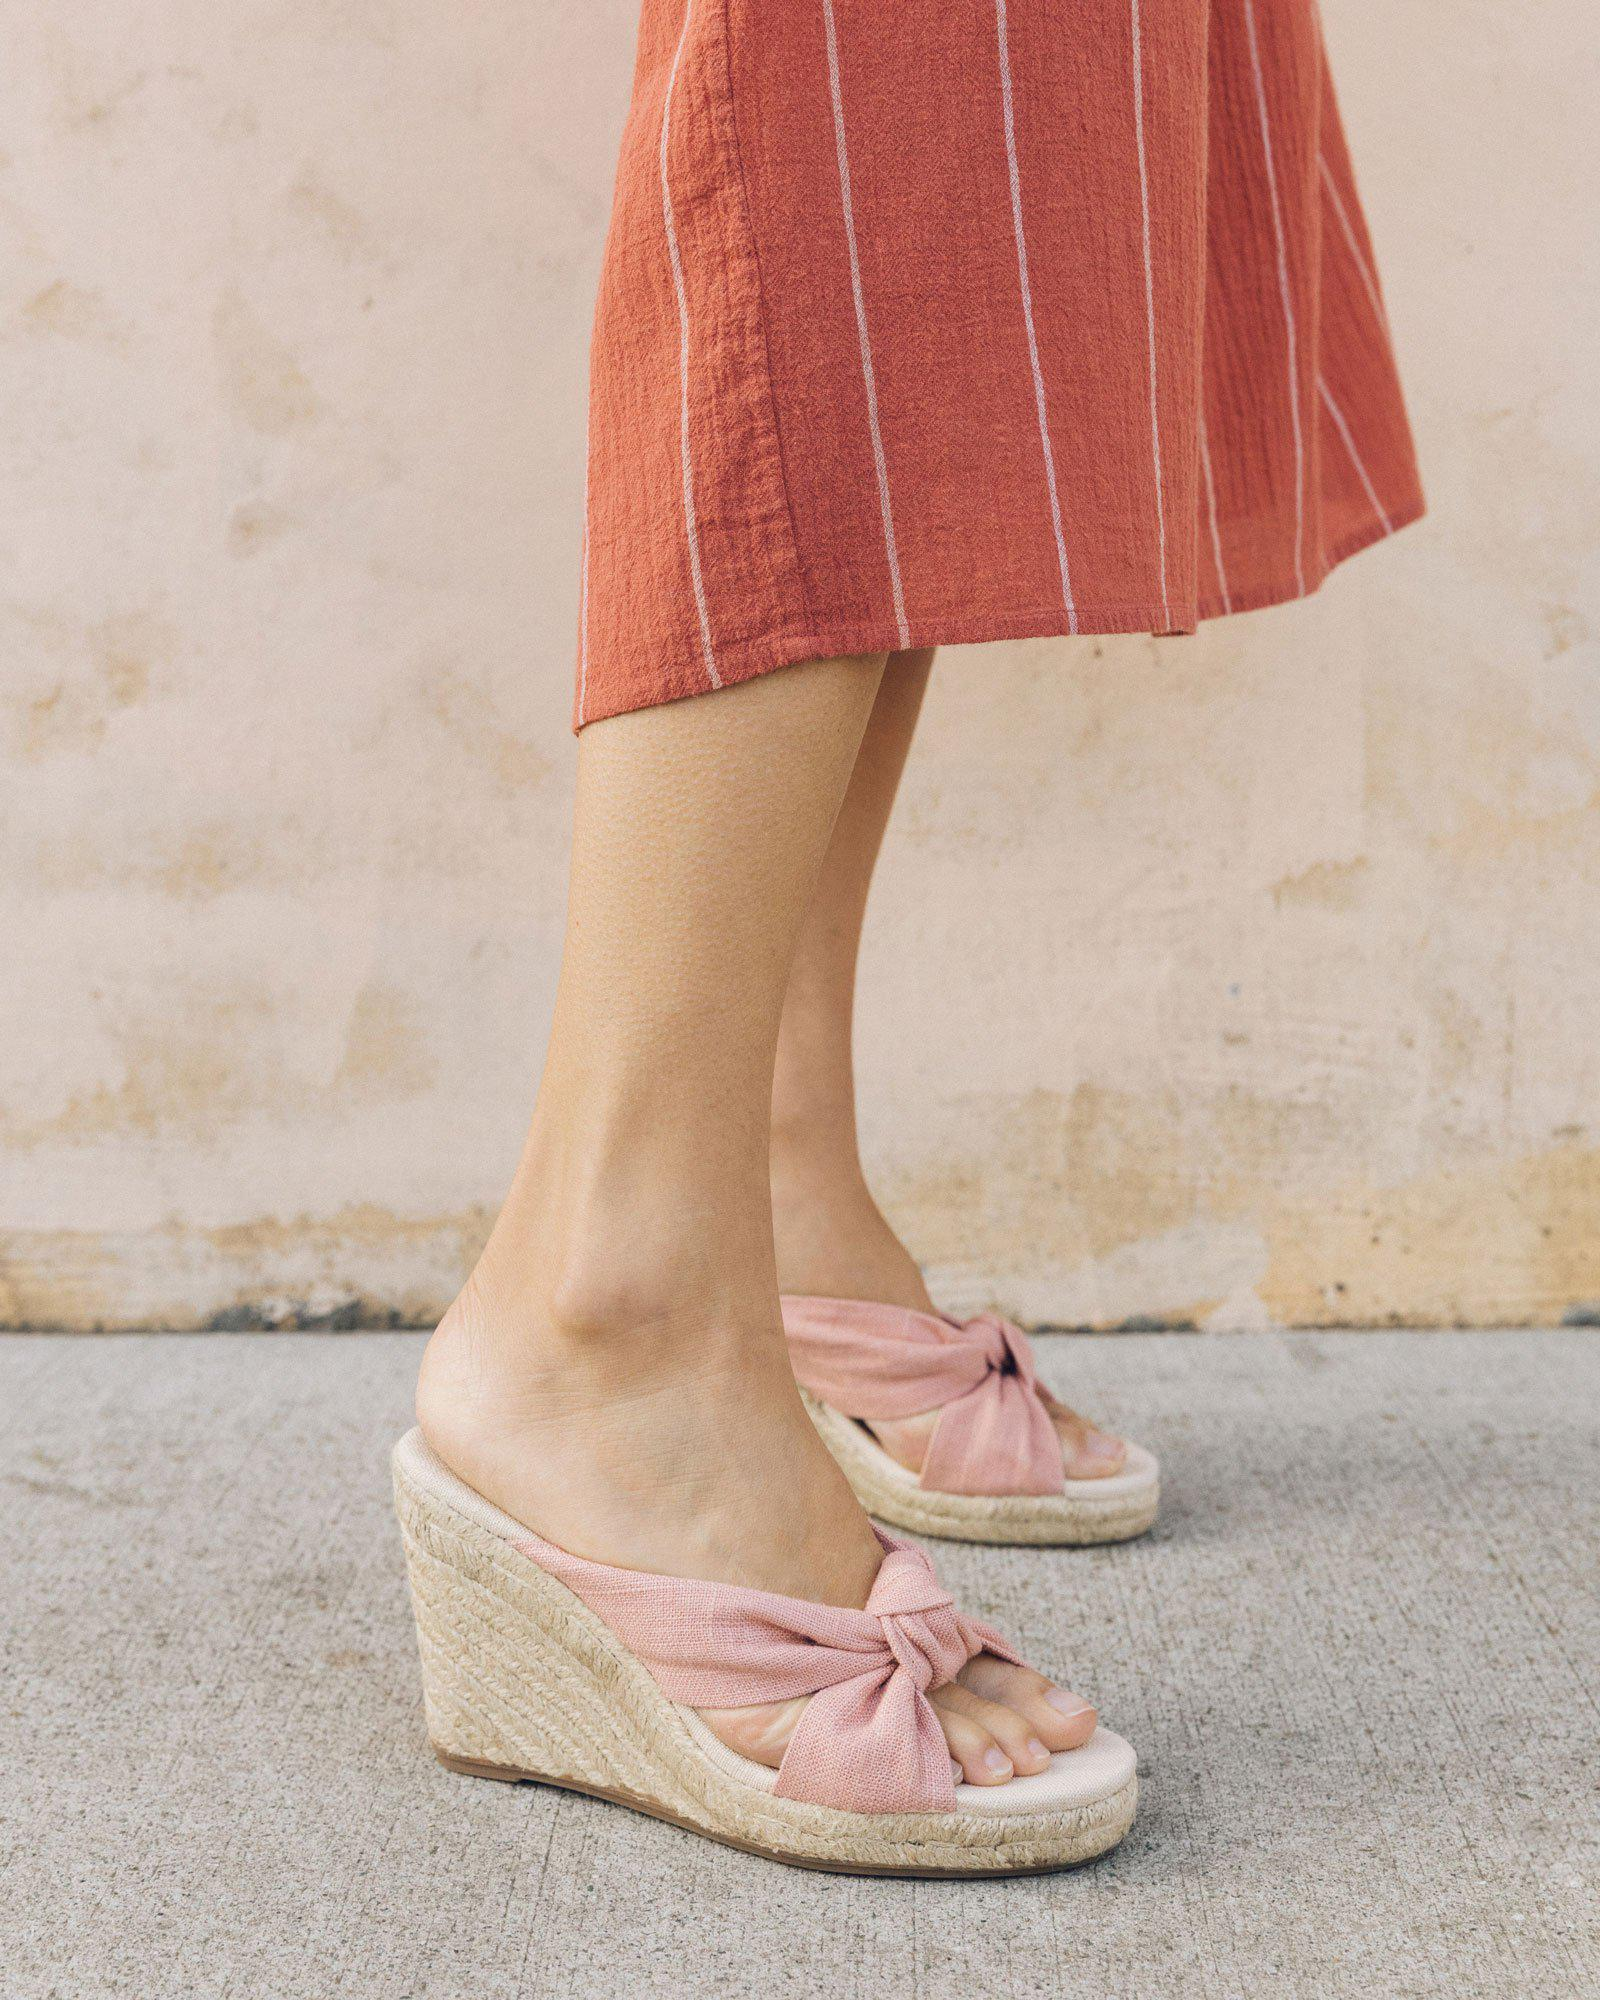 3801d1c75e6f Lyst - Soludos Knotted Wedge in Pink